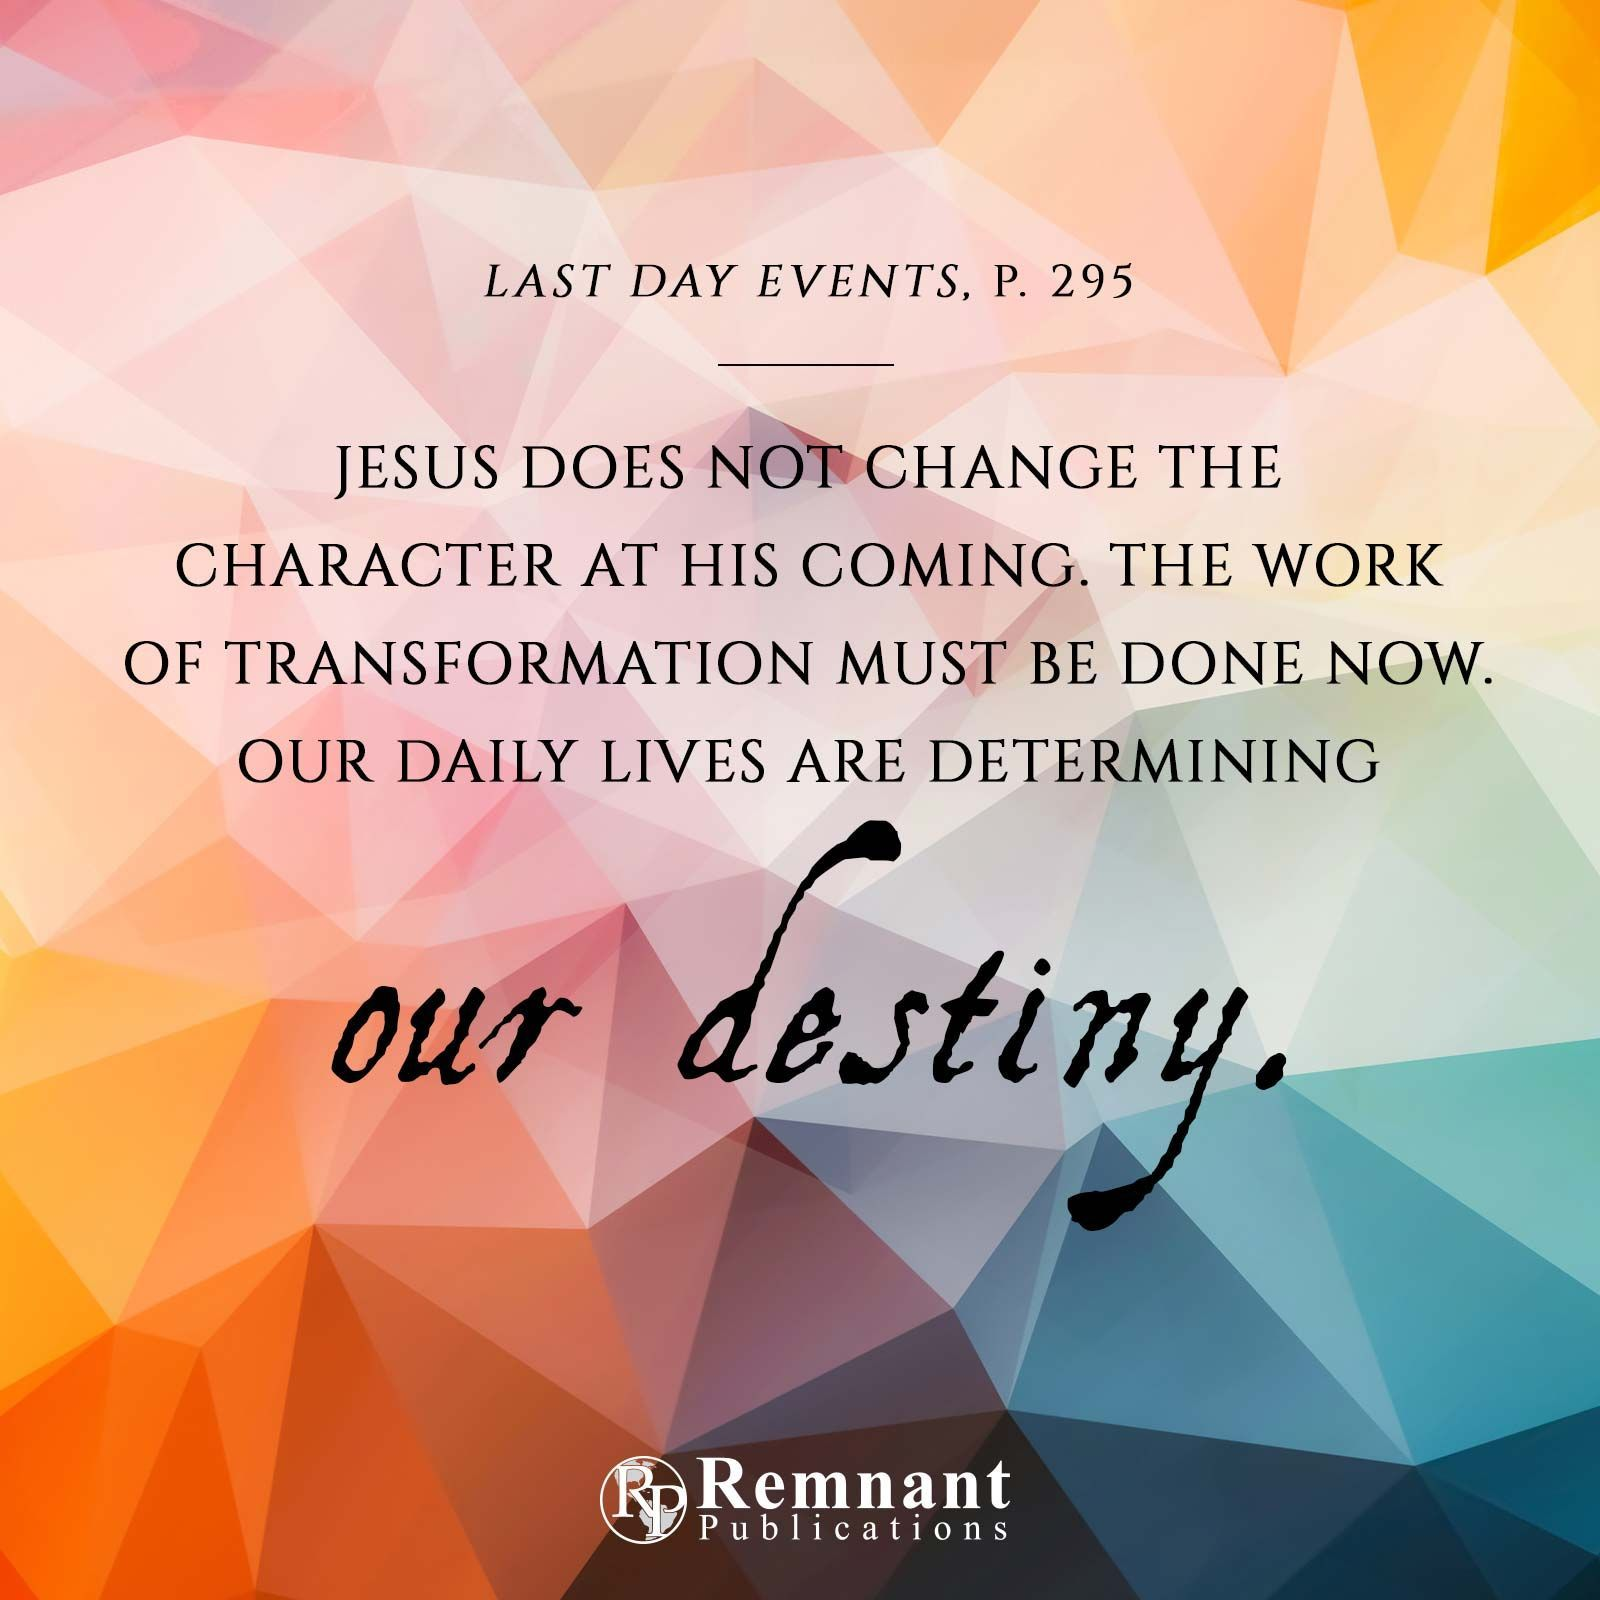 Daily Picture Devotional By Remnant Publications Ellengwhite Sda Christianlife Christian Sanctifiedlife C Christian Memes Last Day Events Christian Life